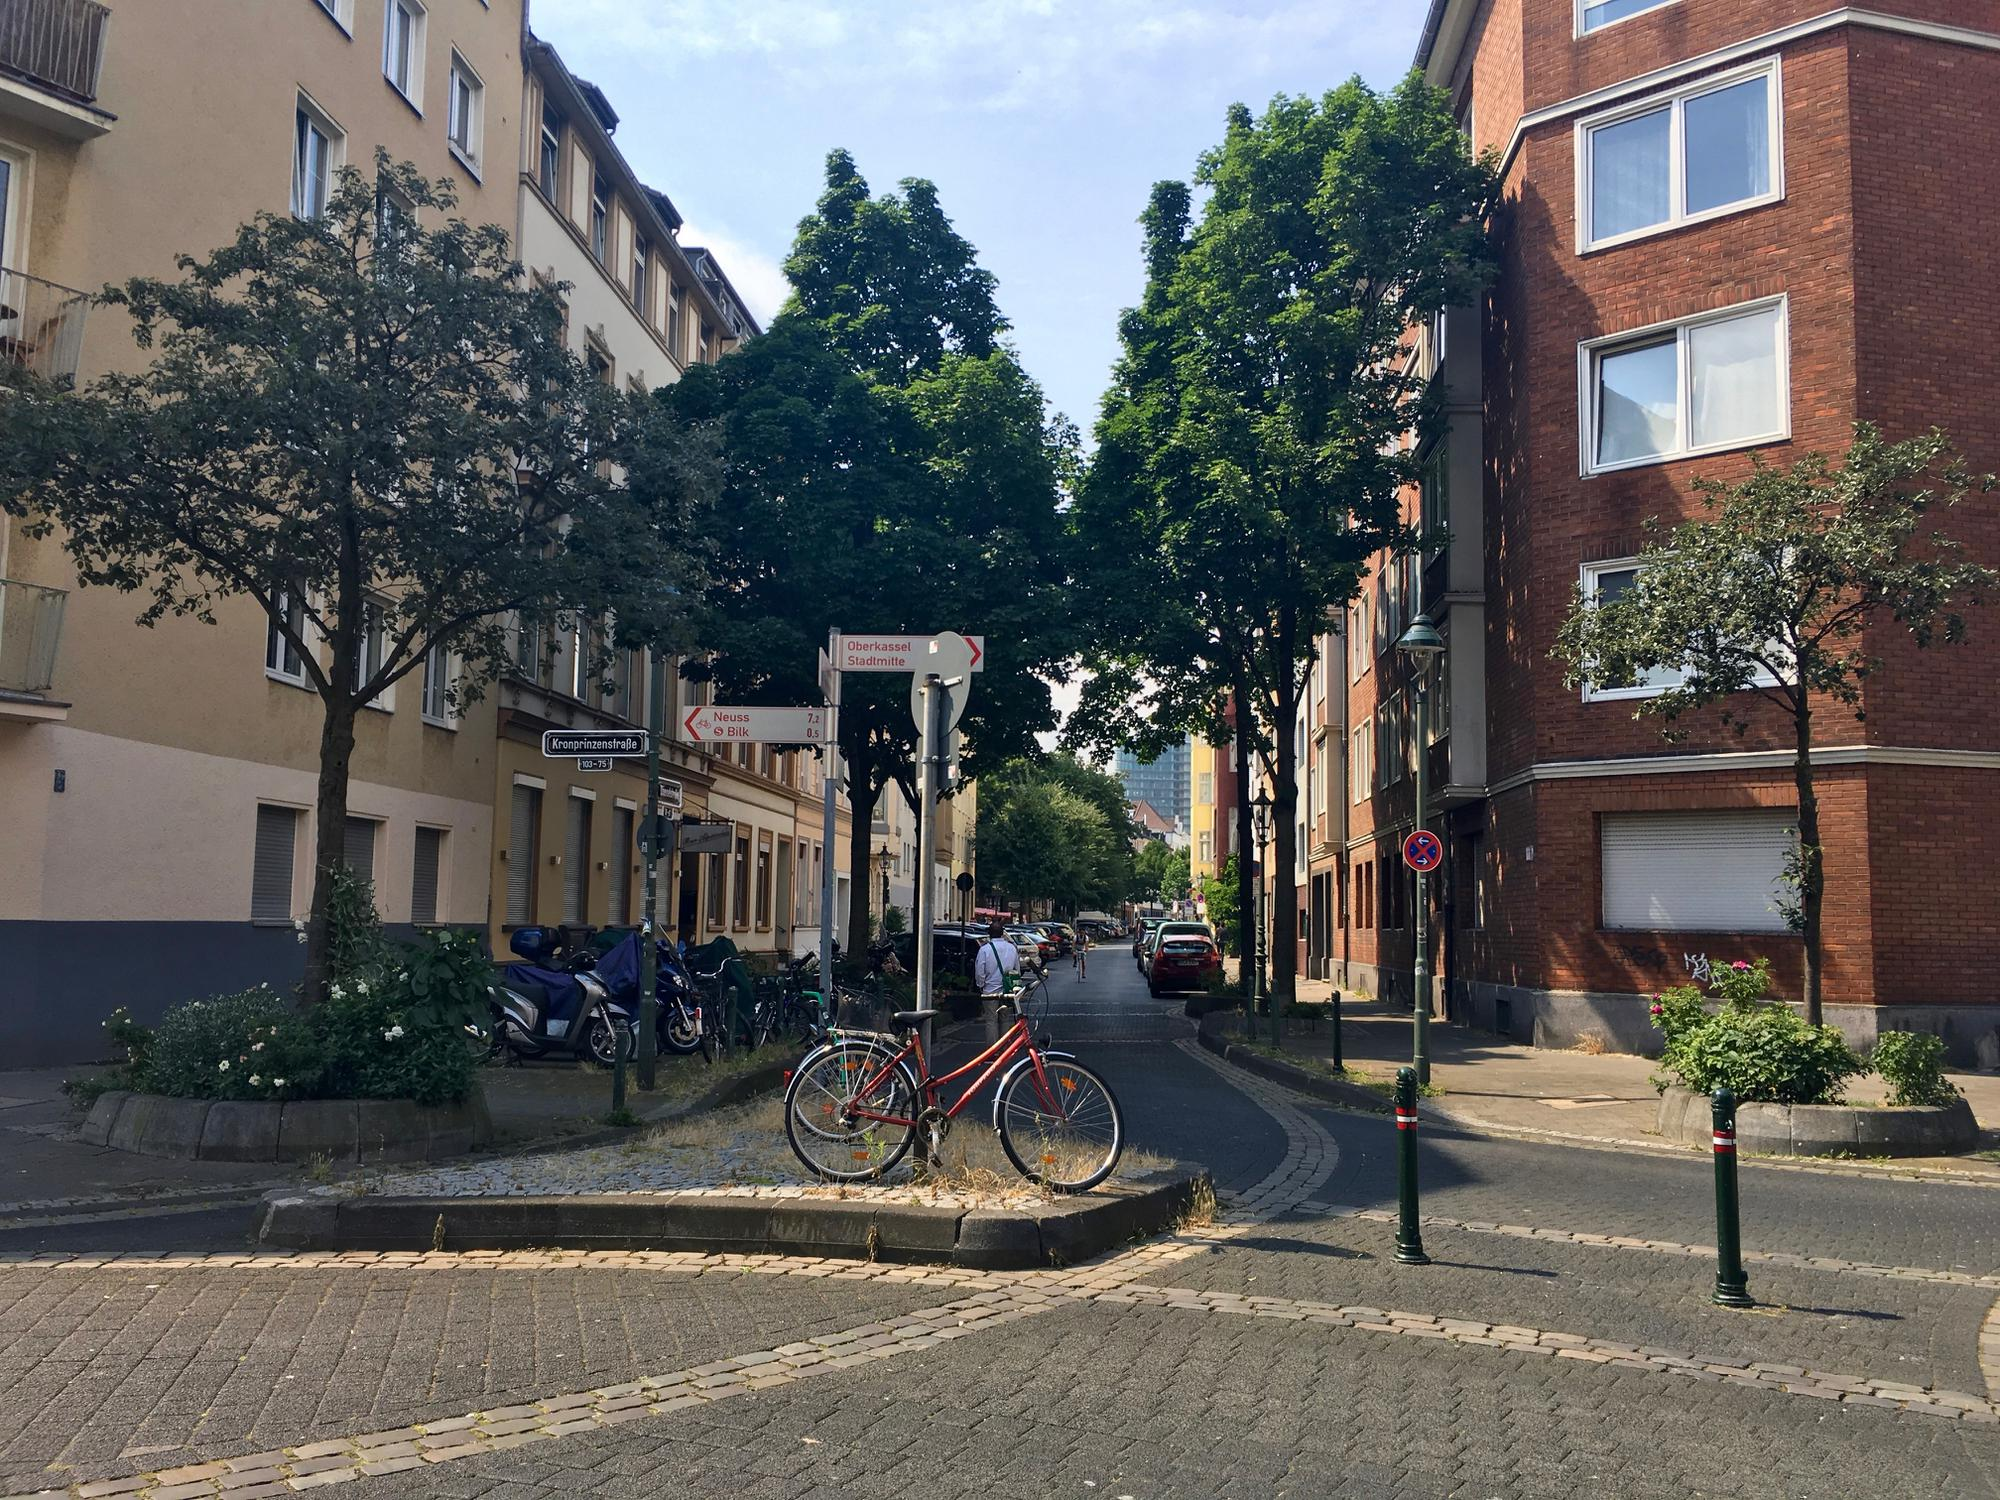 🇩🇪 Düsseldorf, Germany, july 2016.